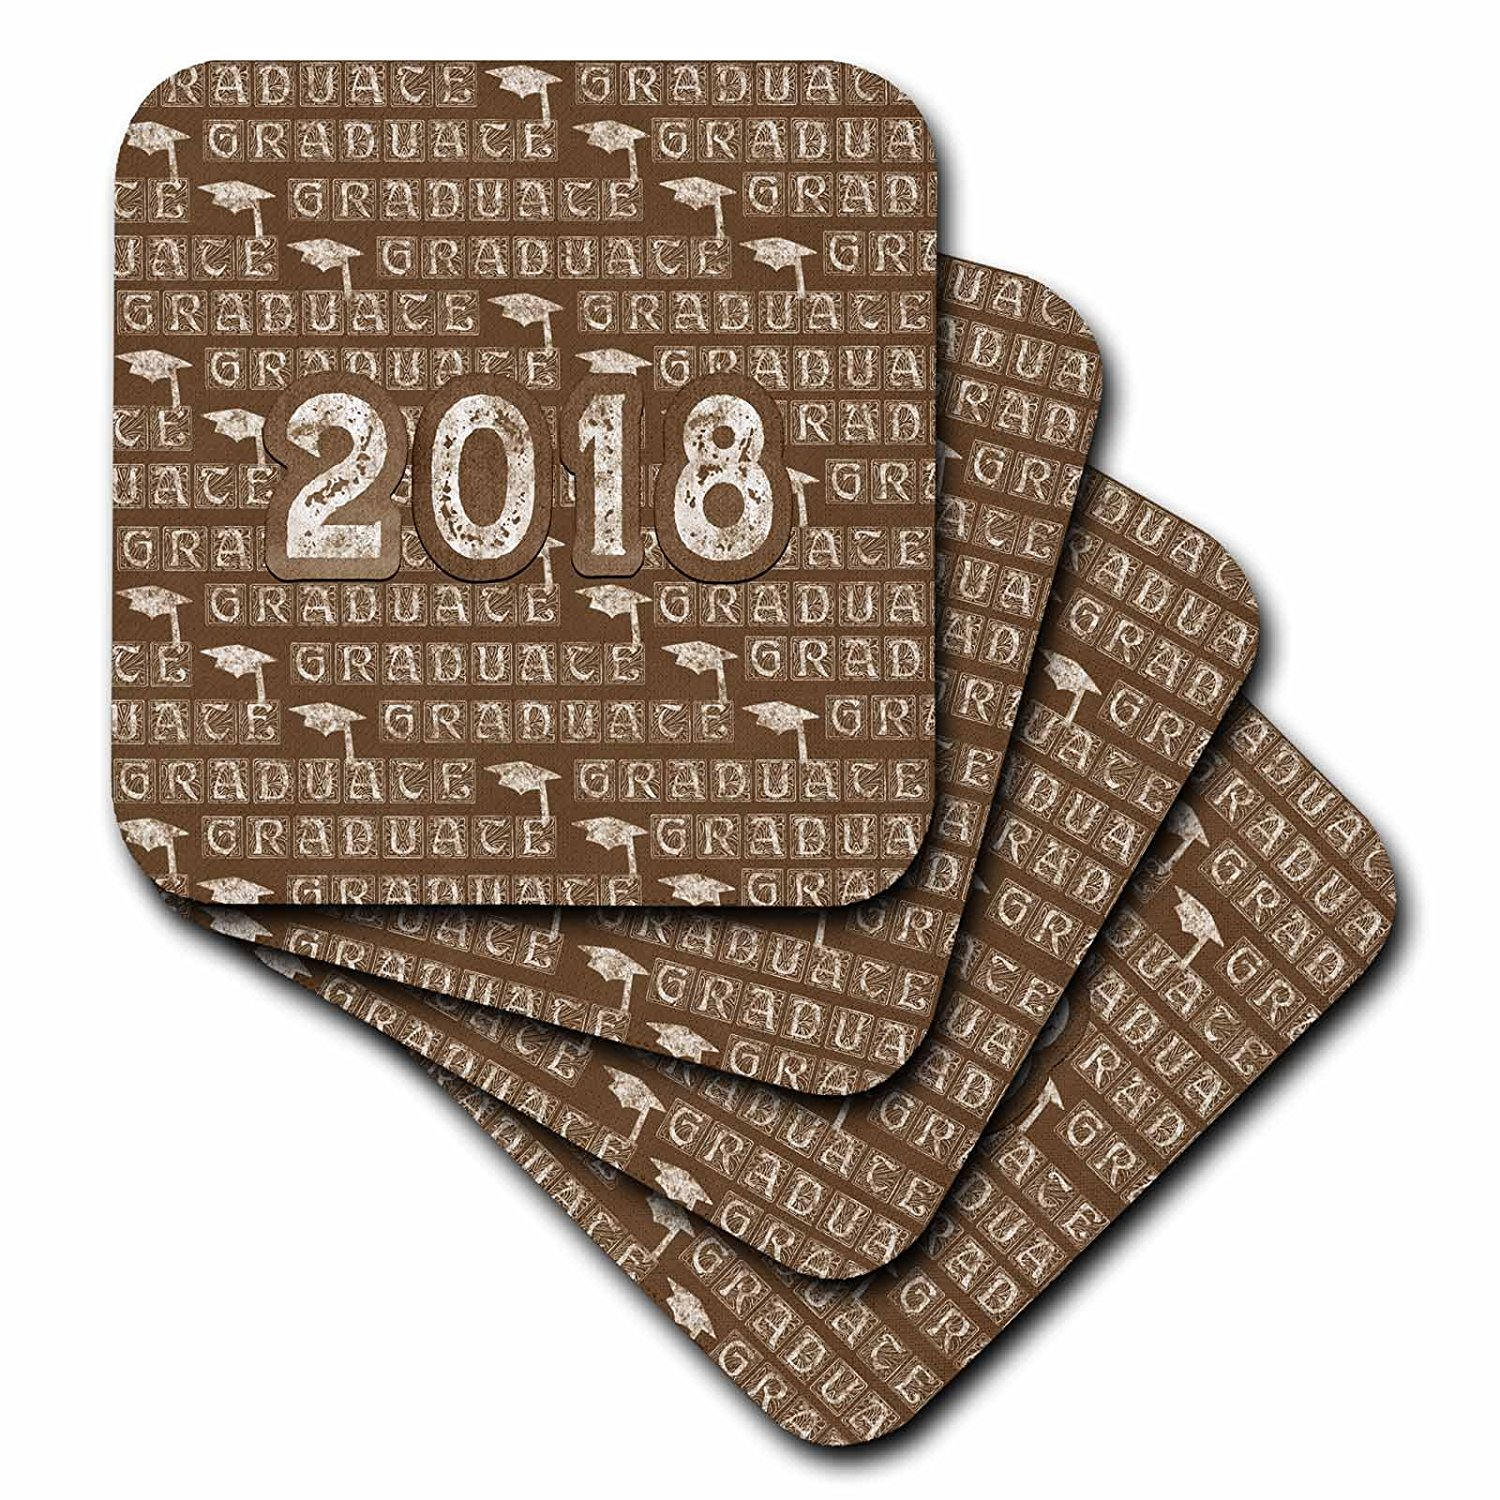 3dRose Beverly Turner Graduation Design - 2018 and Graduation Caps Caulk board Look, White and Brown - set of 4 Ceramic Tile Coasters (cst_276155_3)